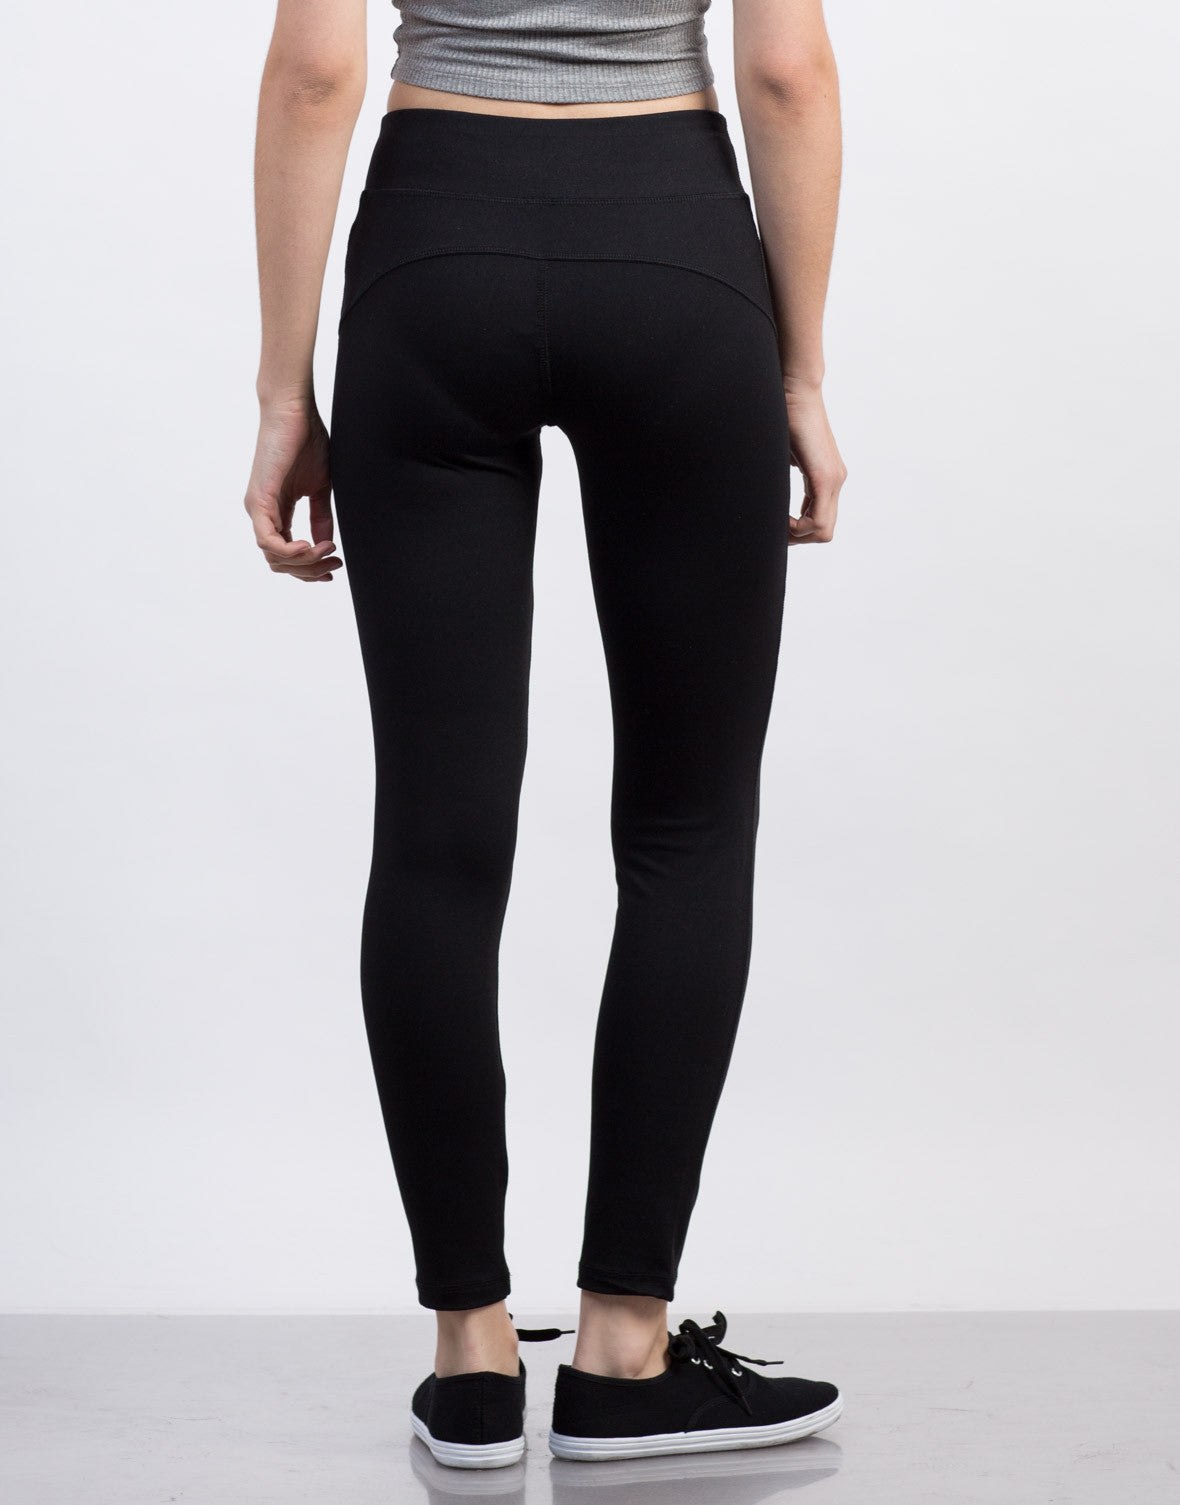 Back View of Solid Spandex Active Leggings